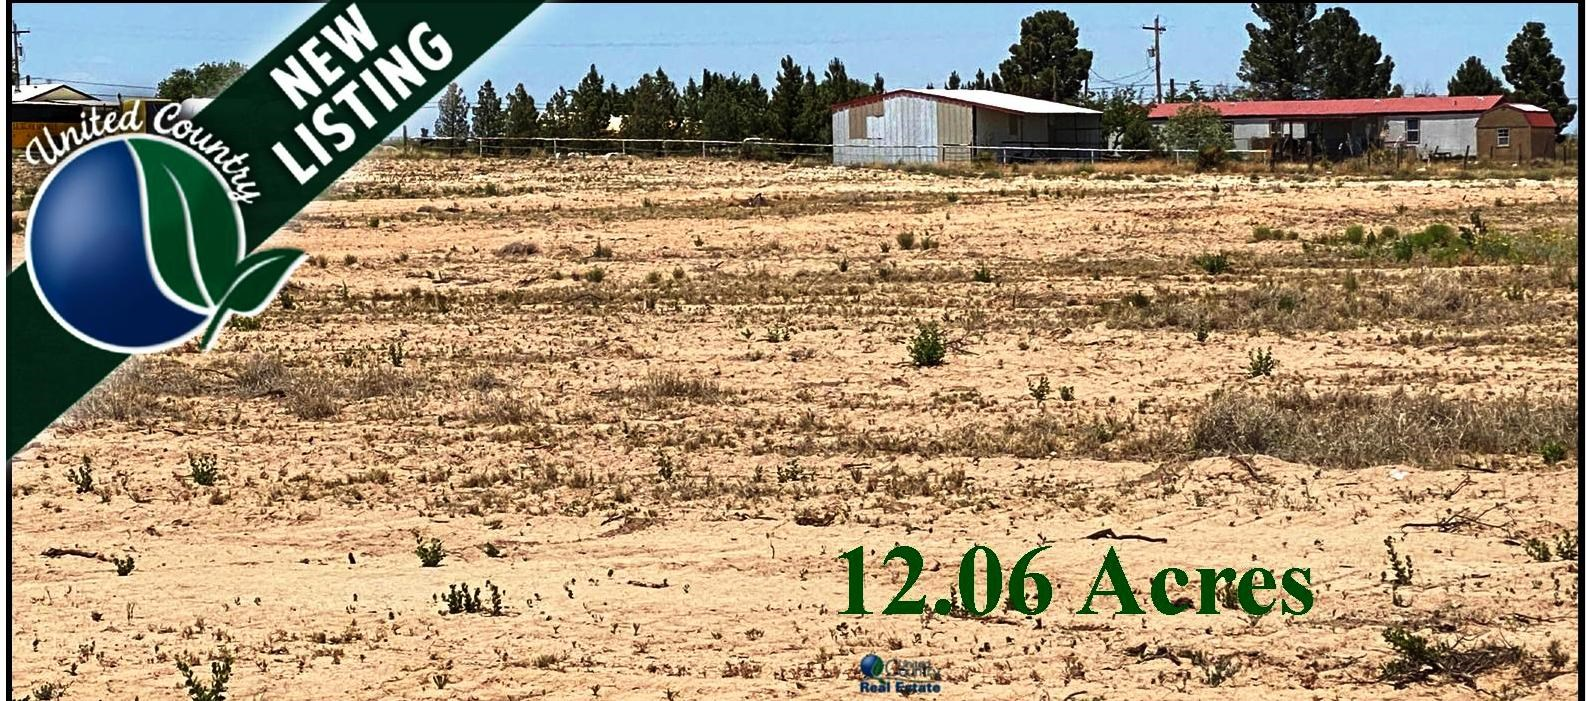 Acreage for sale near Carlsbad, NM.  Land for Sale